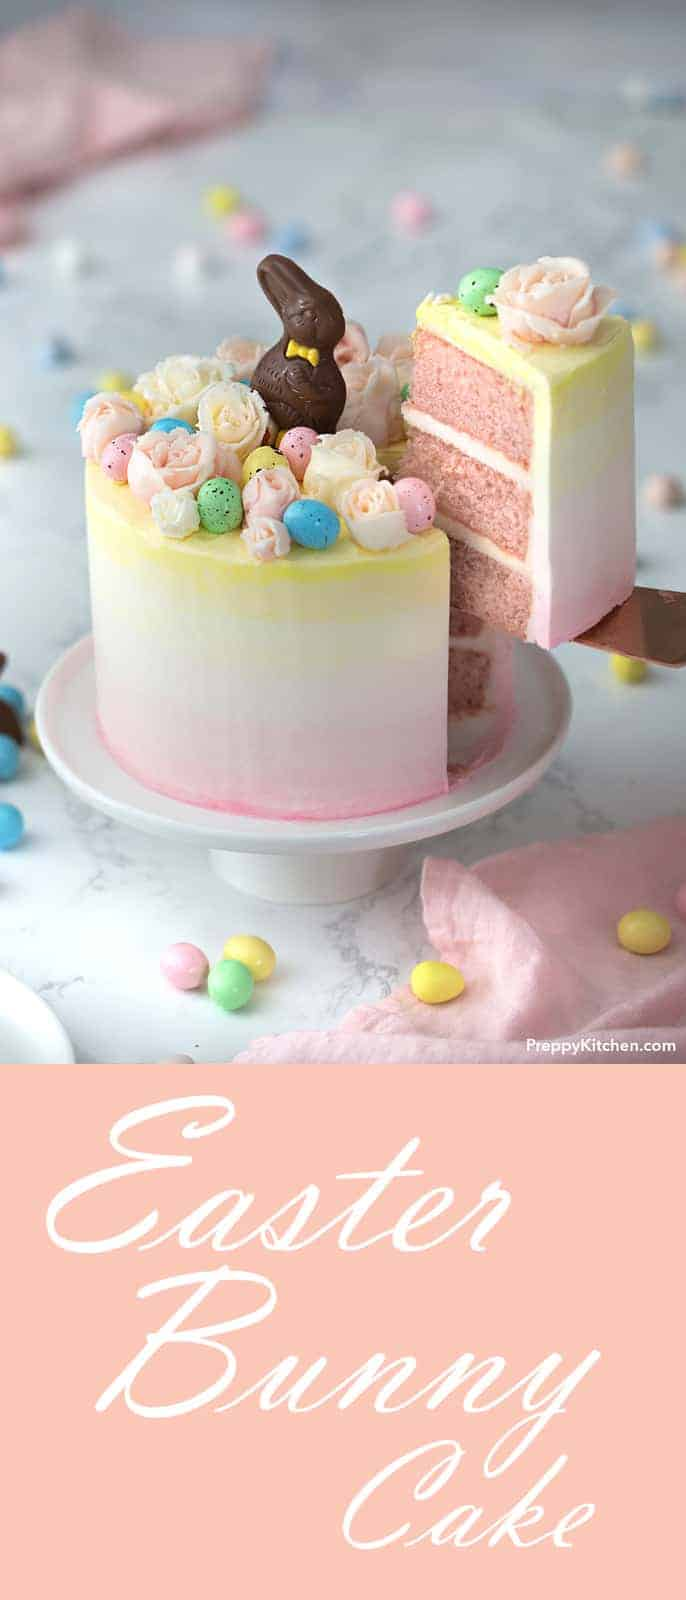 The perfect cake for every Easter brunch table! Delicious strawberry flavor with Italian meringue buttercream ombre, roses and the cutest little garden bunny!